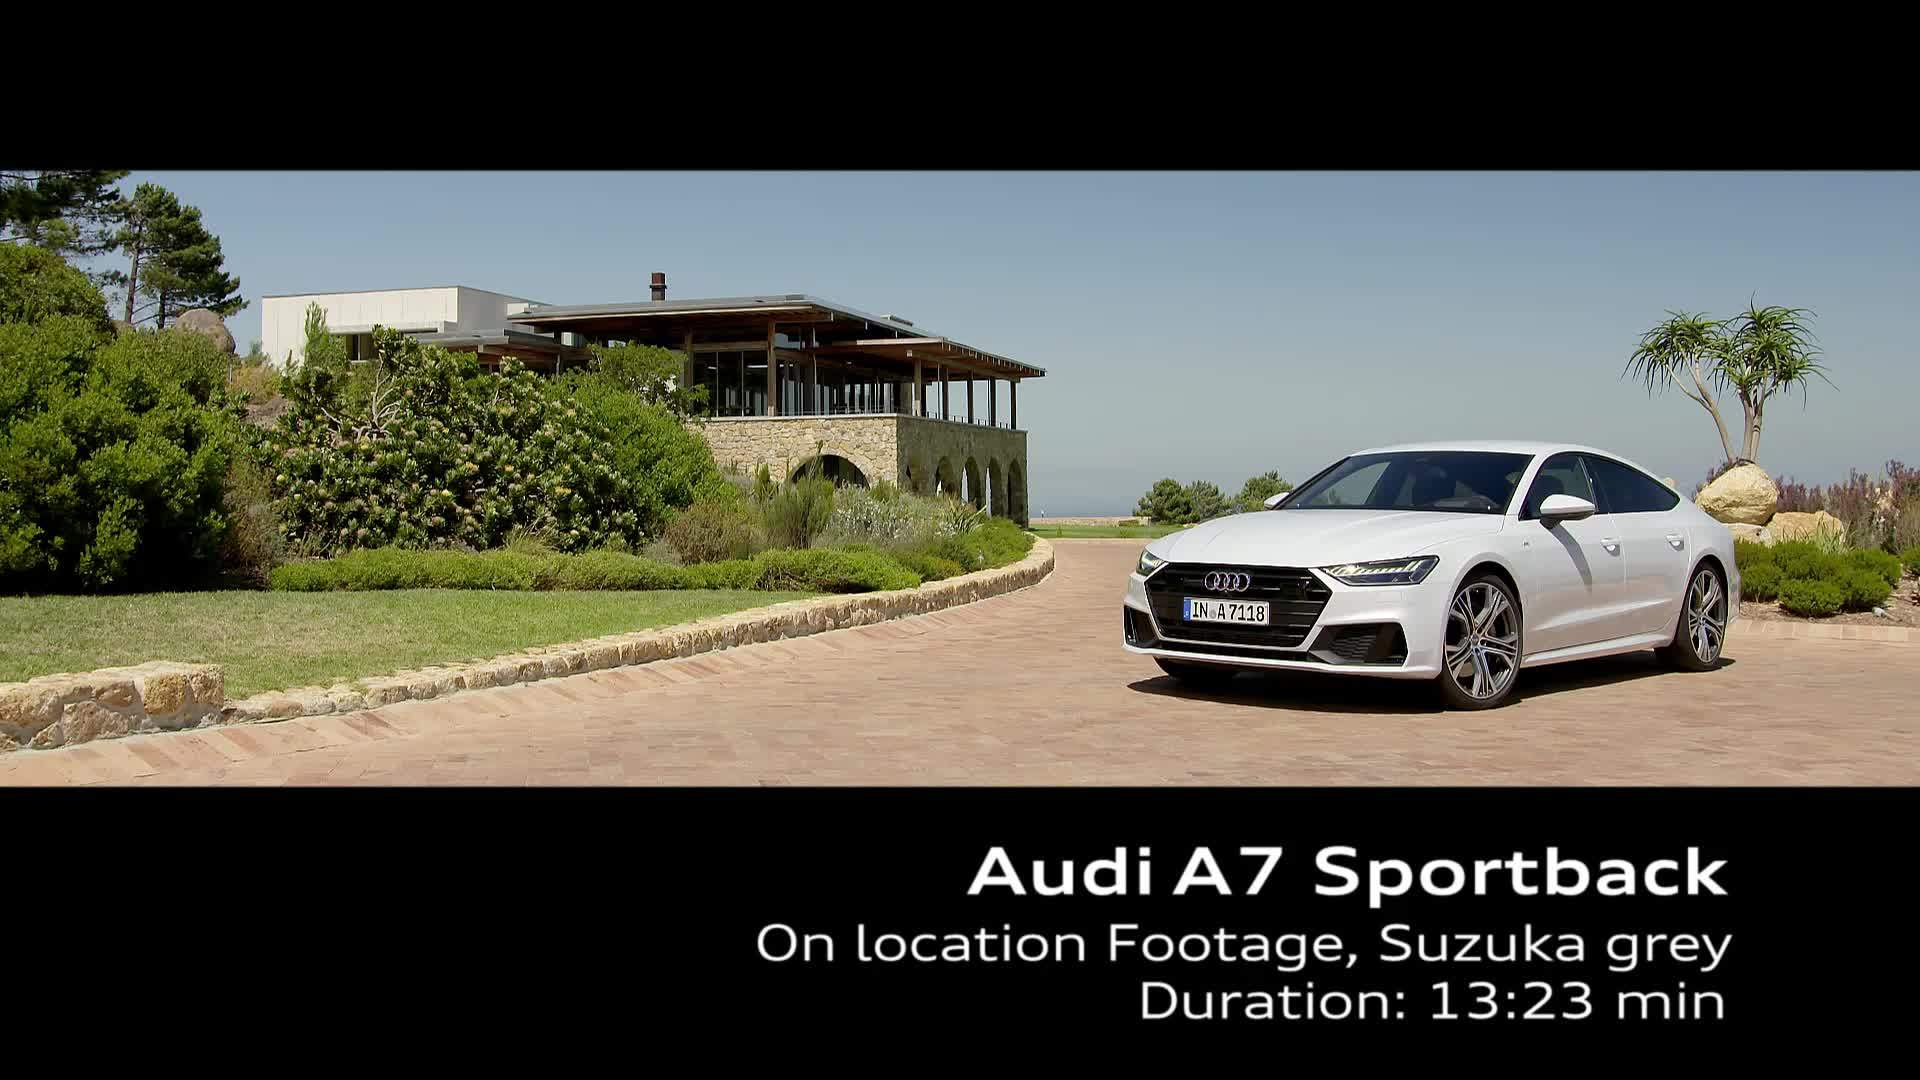 Audi A7 Sportback in Suzukagrau – on Location Footage Kapstadt